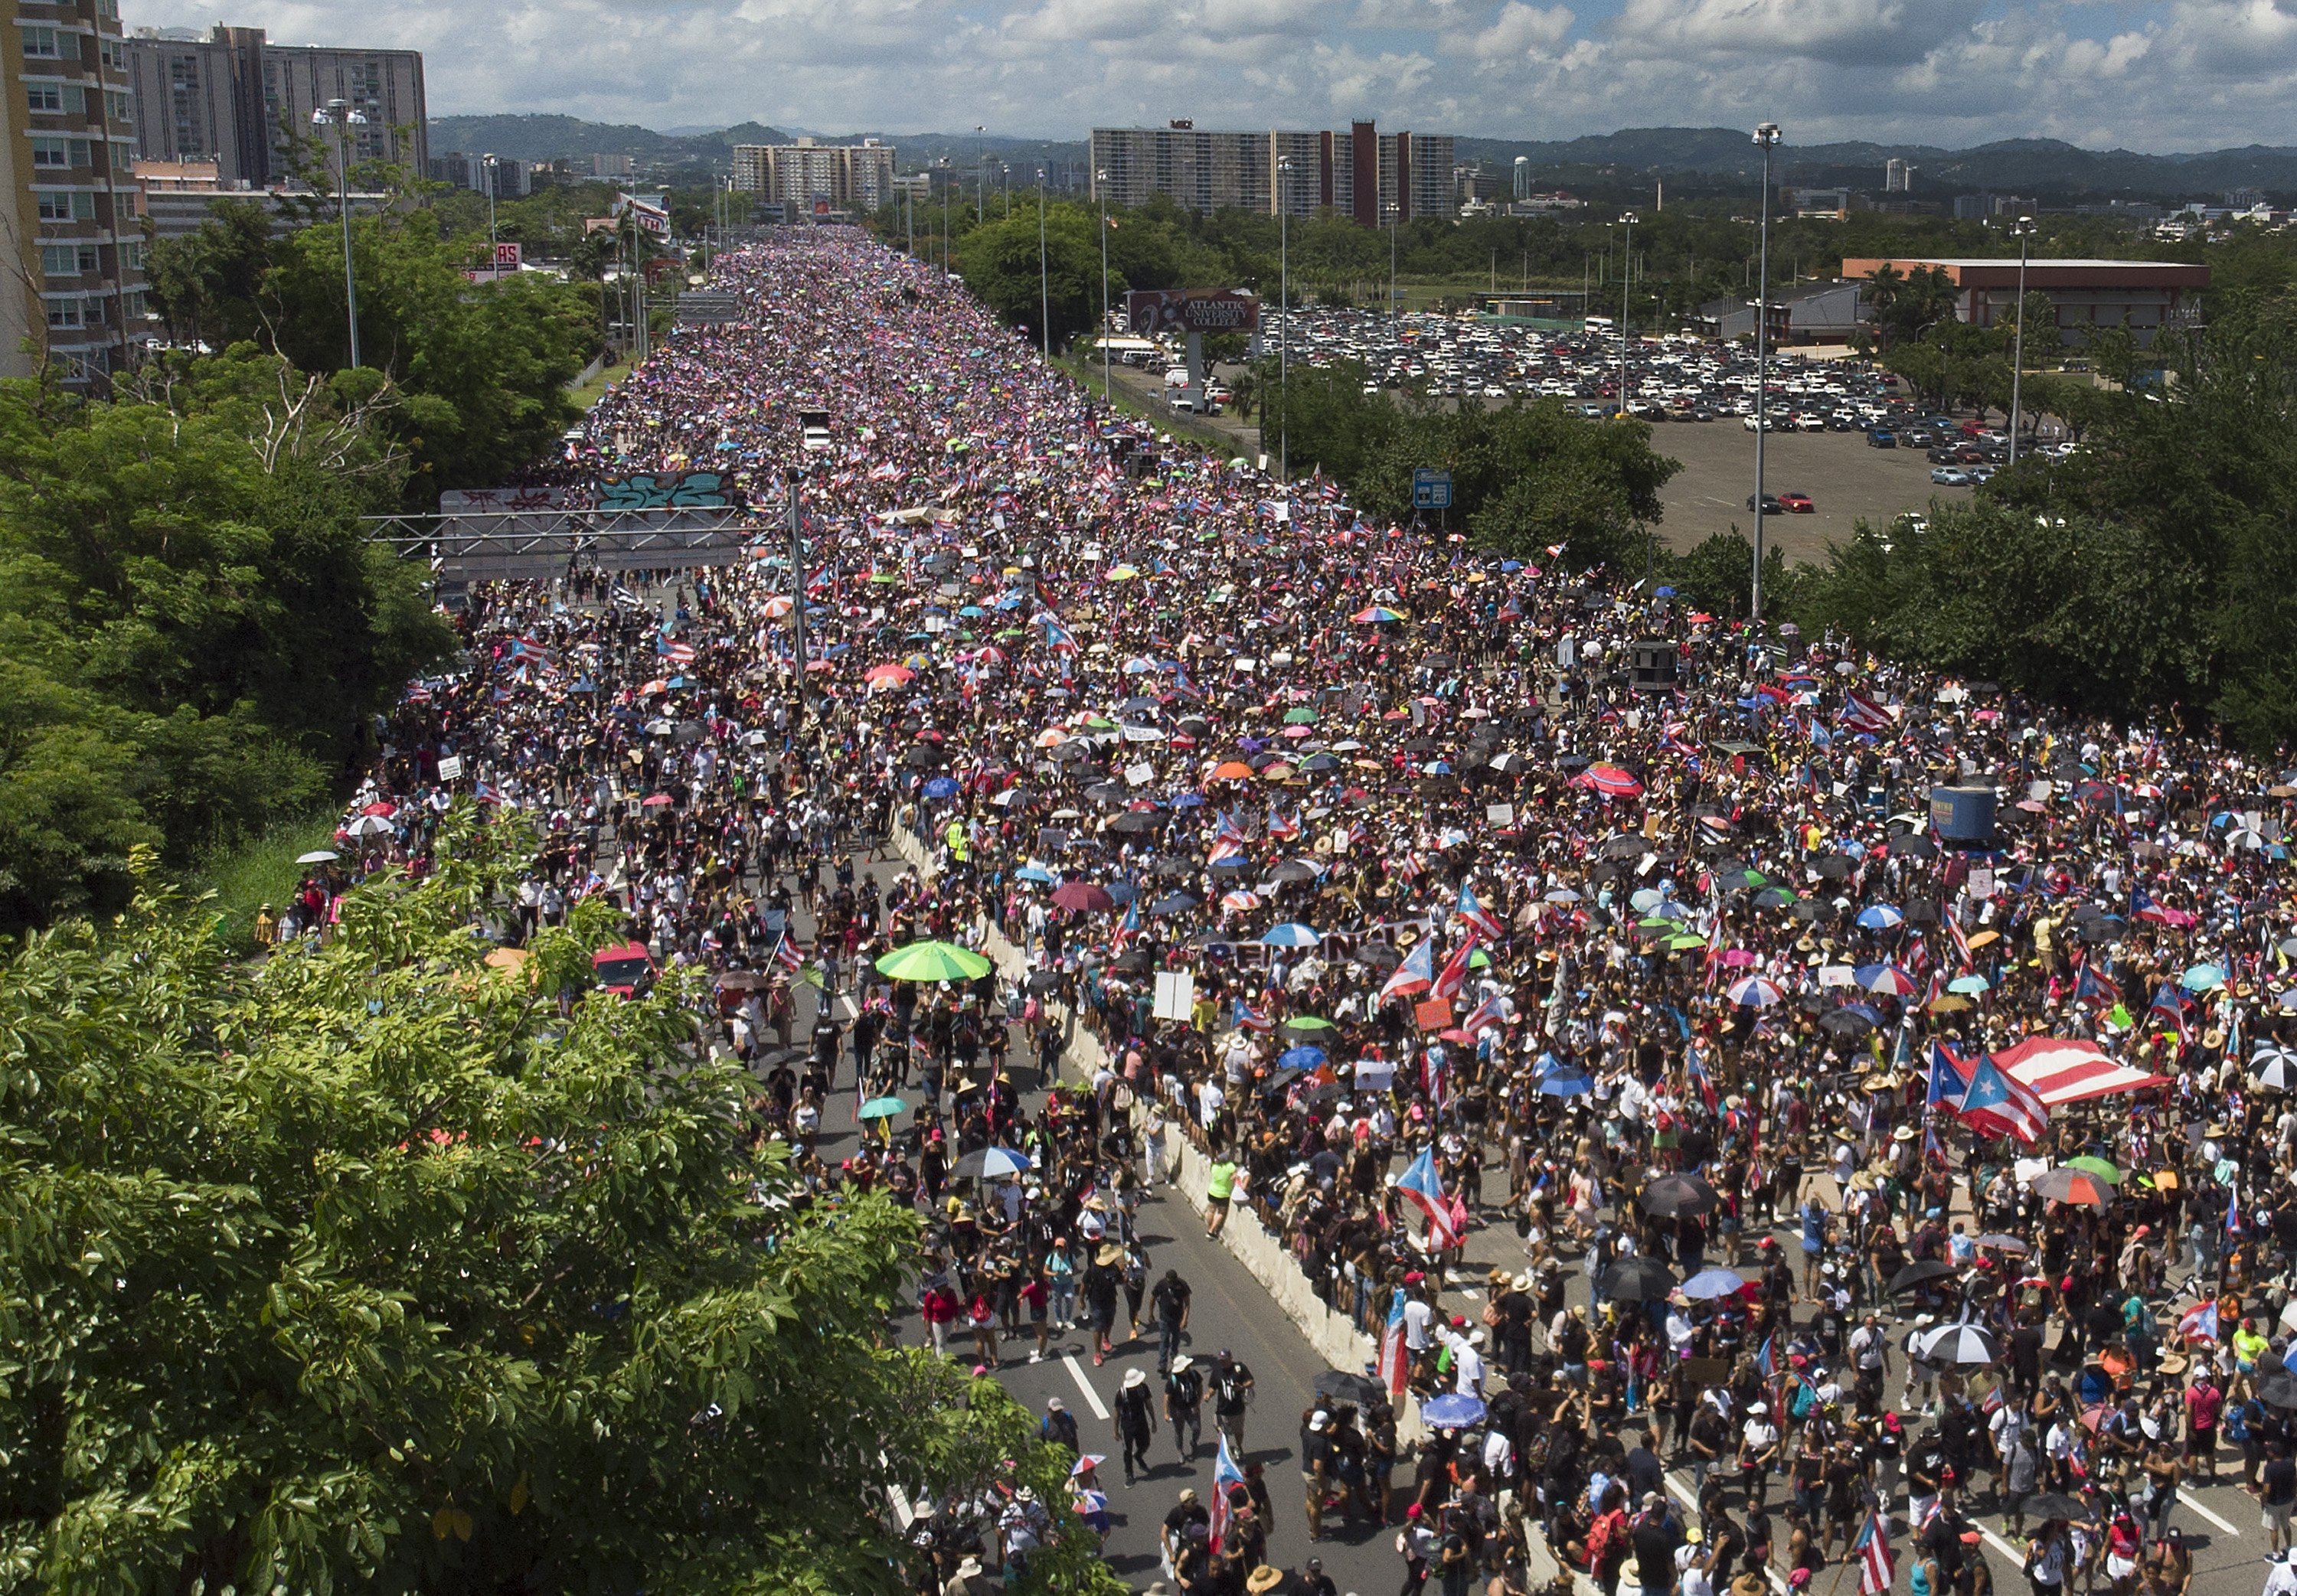 Puerto Rico's mass protests were partly sparked by this news outlet's publication of leaked texts